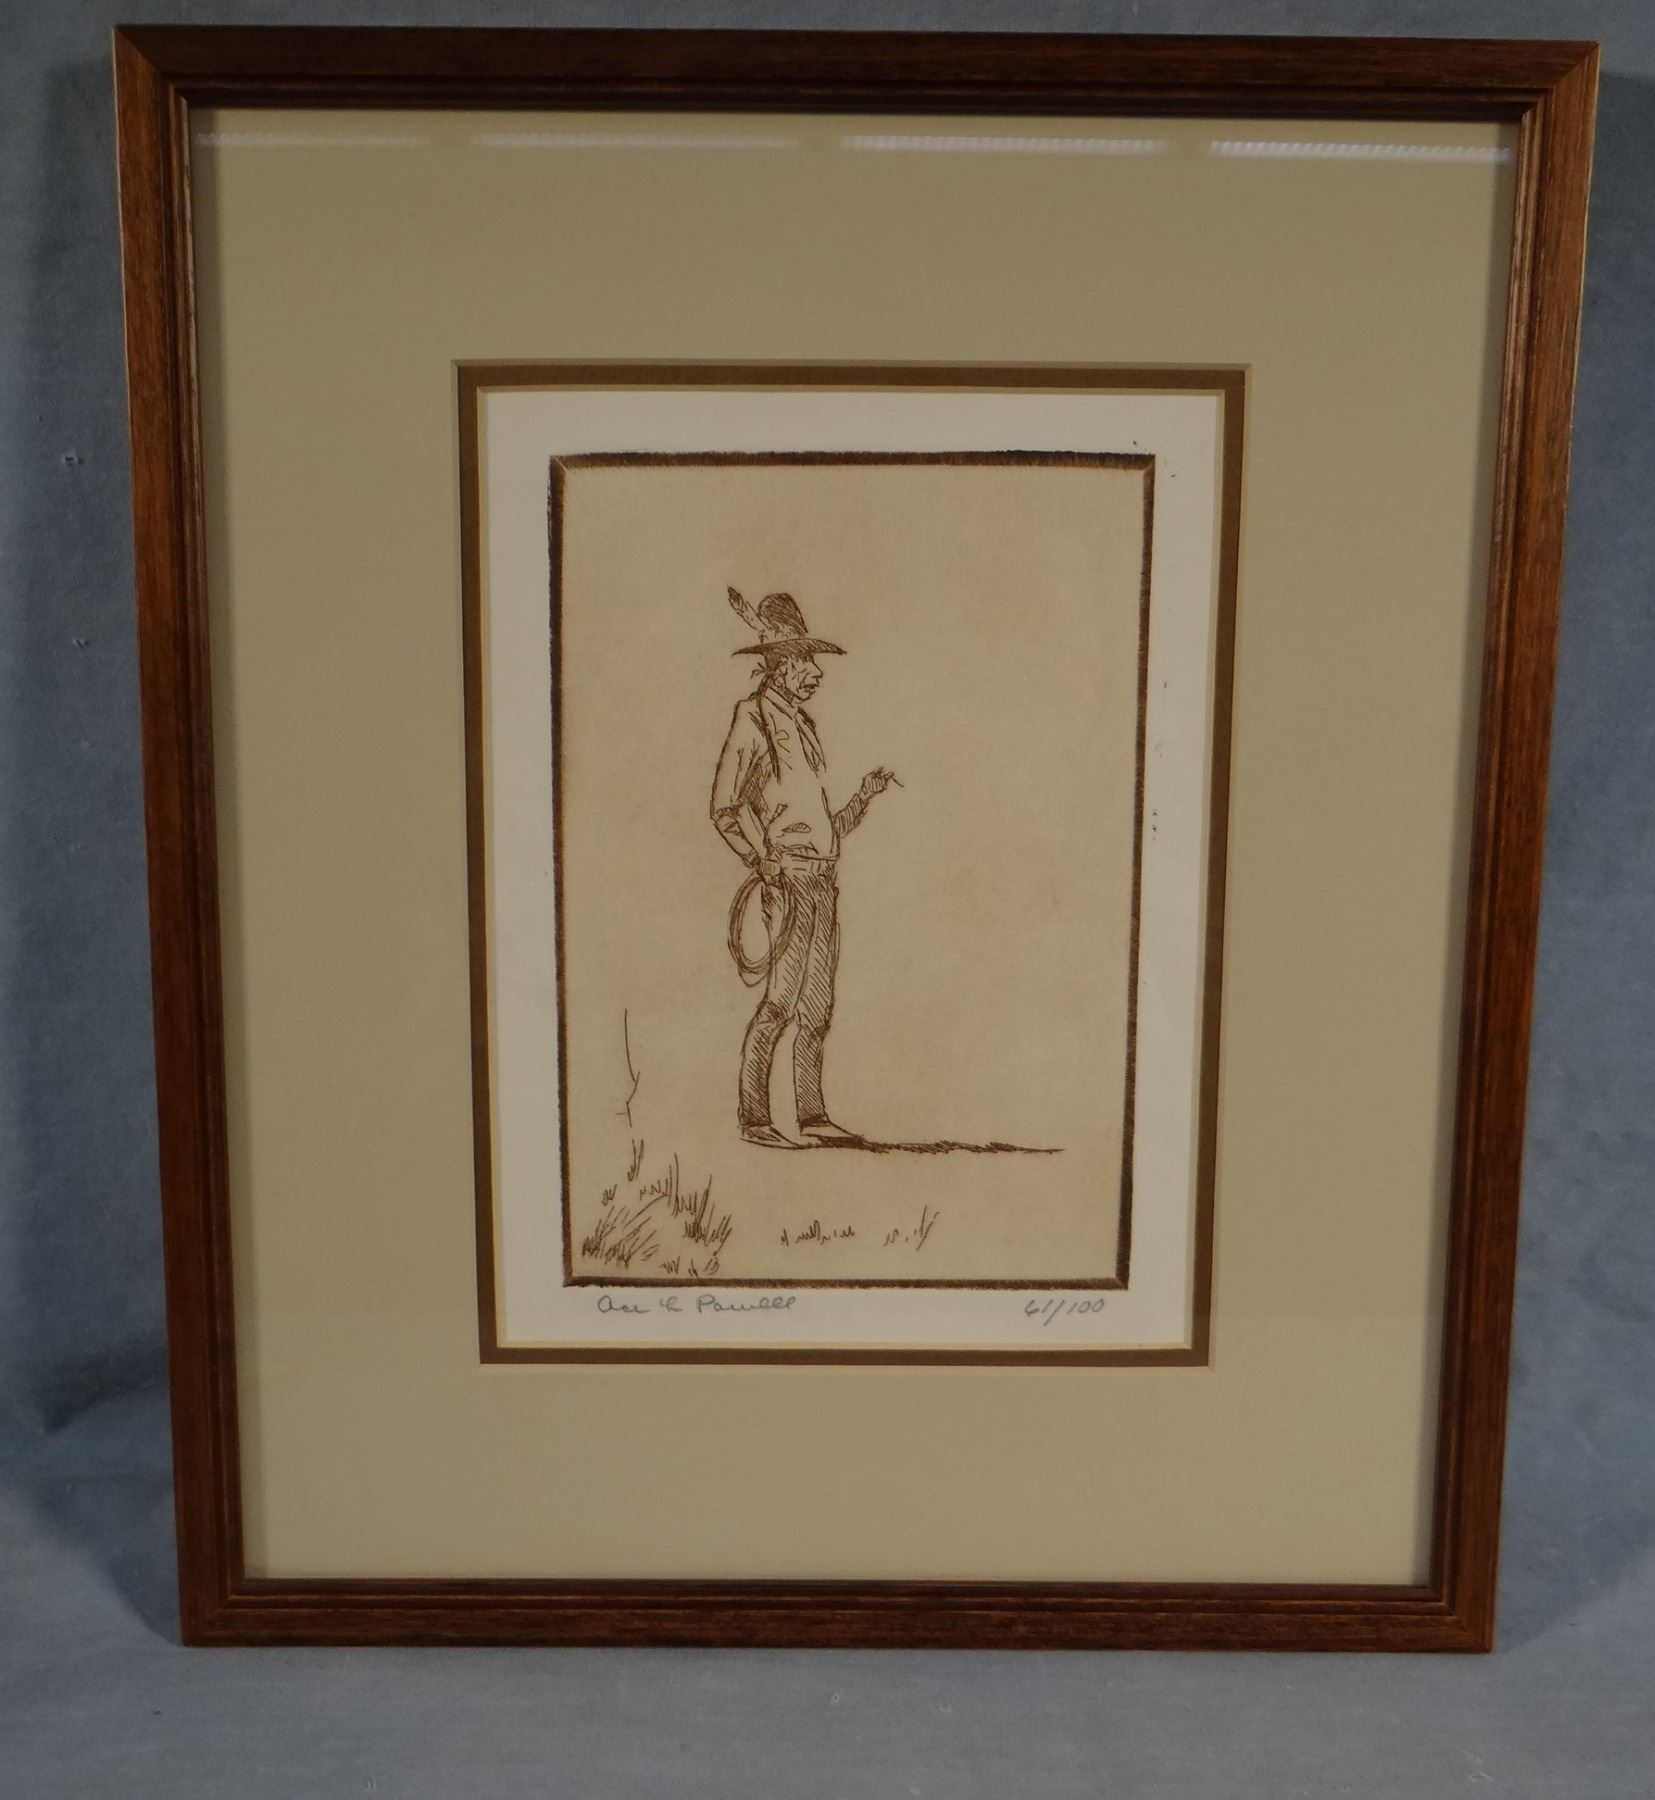 "Powell, Ace, framed etching, Indian cowboy w/lasso, 61/100, 5""x 7"""